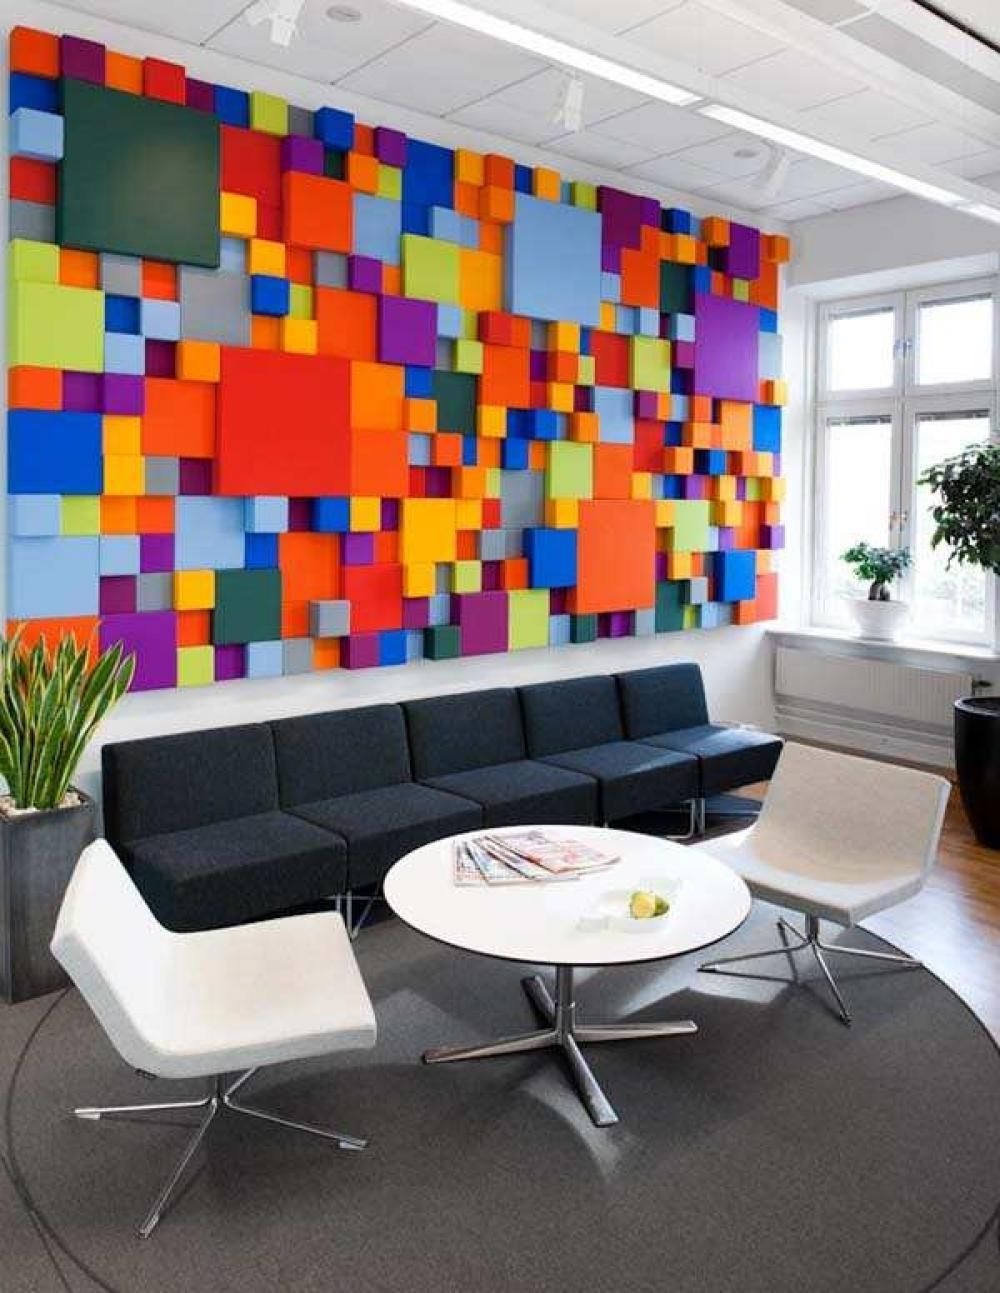 Cheerful Office Interior Desain In Sweden With Colorful Wall Decoration 24  Cool Modern And Spacious Office Interior Designs Concept Interior Design